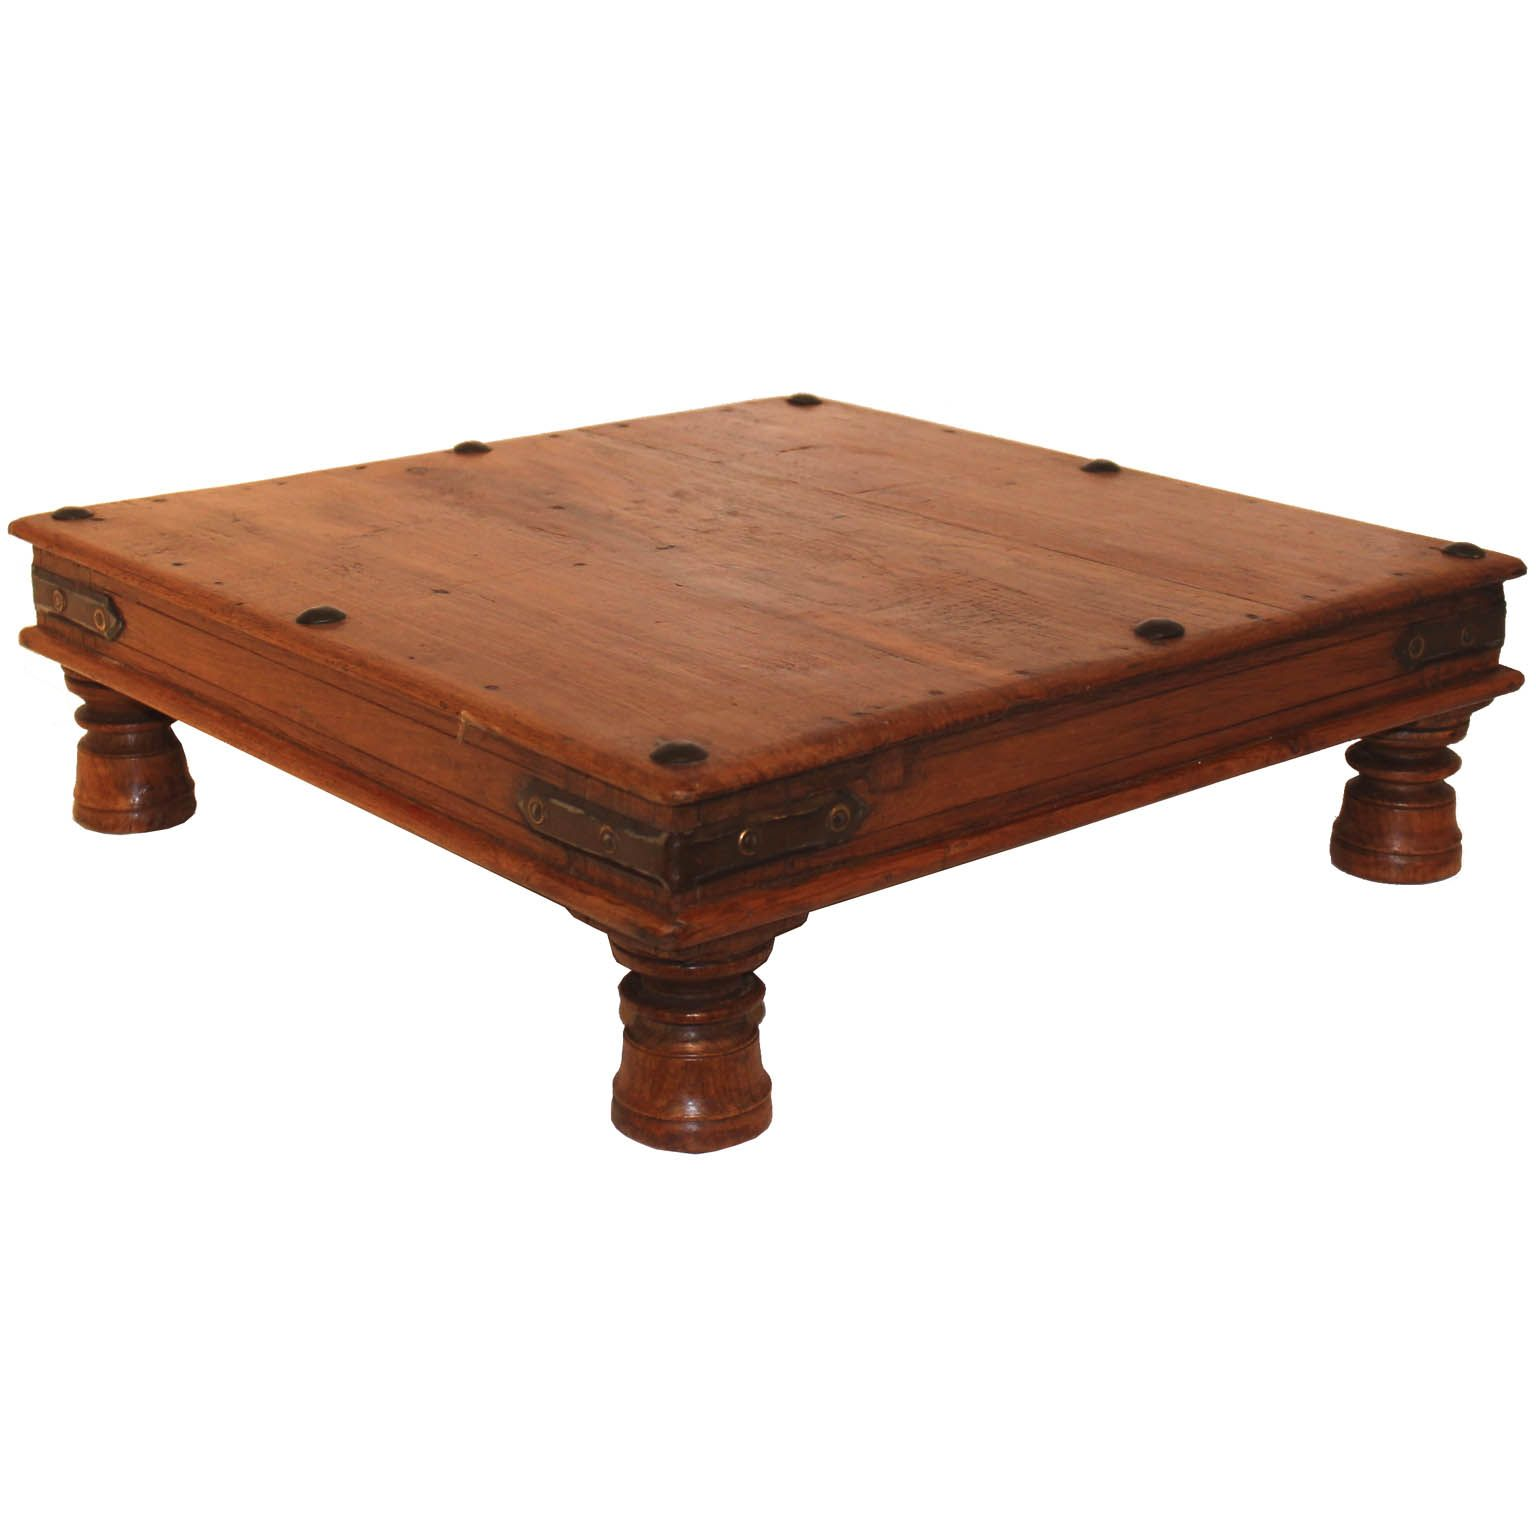 This Acacia Chowki Table Is A Low Wood Table From India. You Can Place It